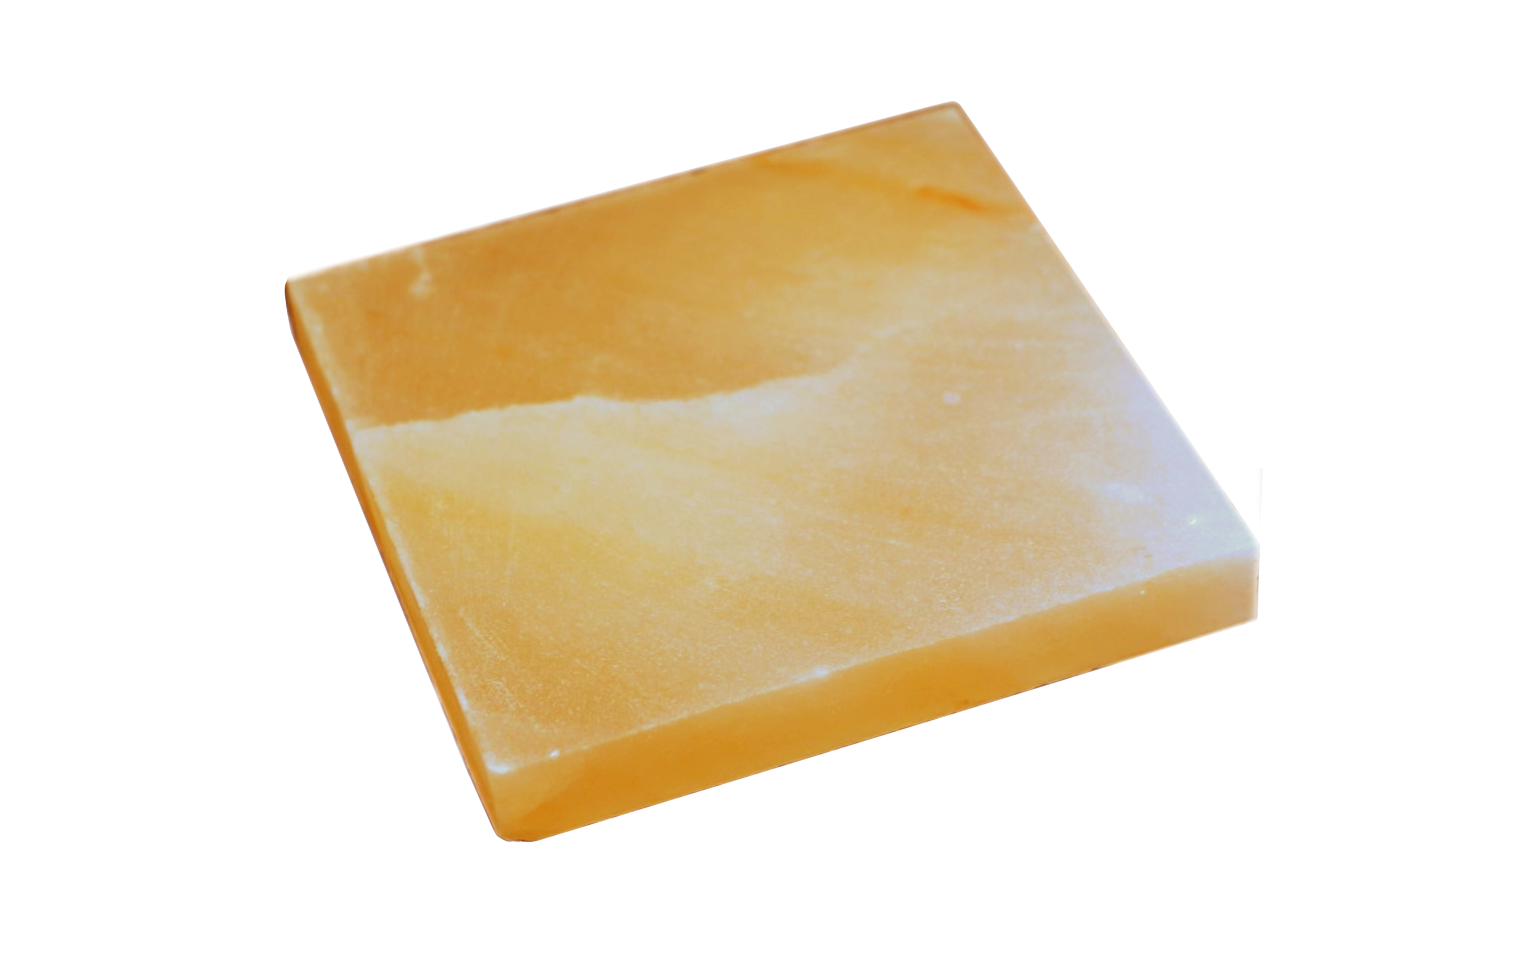 Square Cook Plate, 8 Inch Image